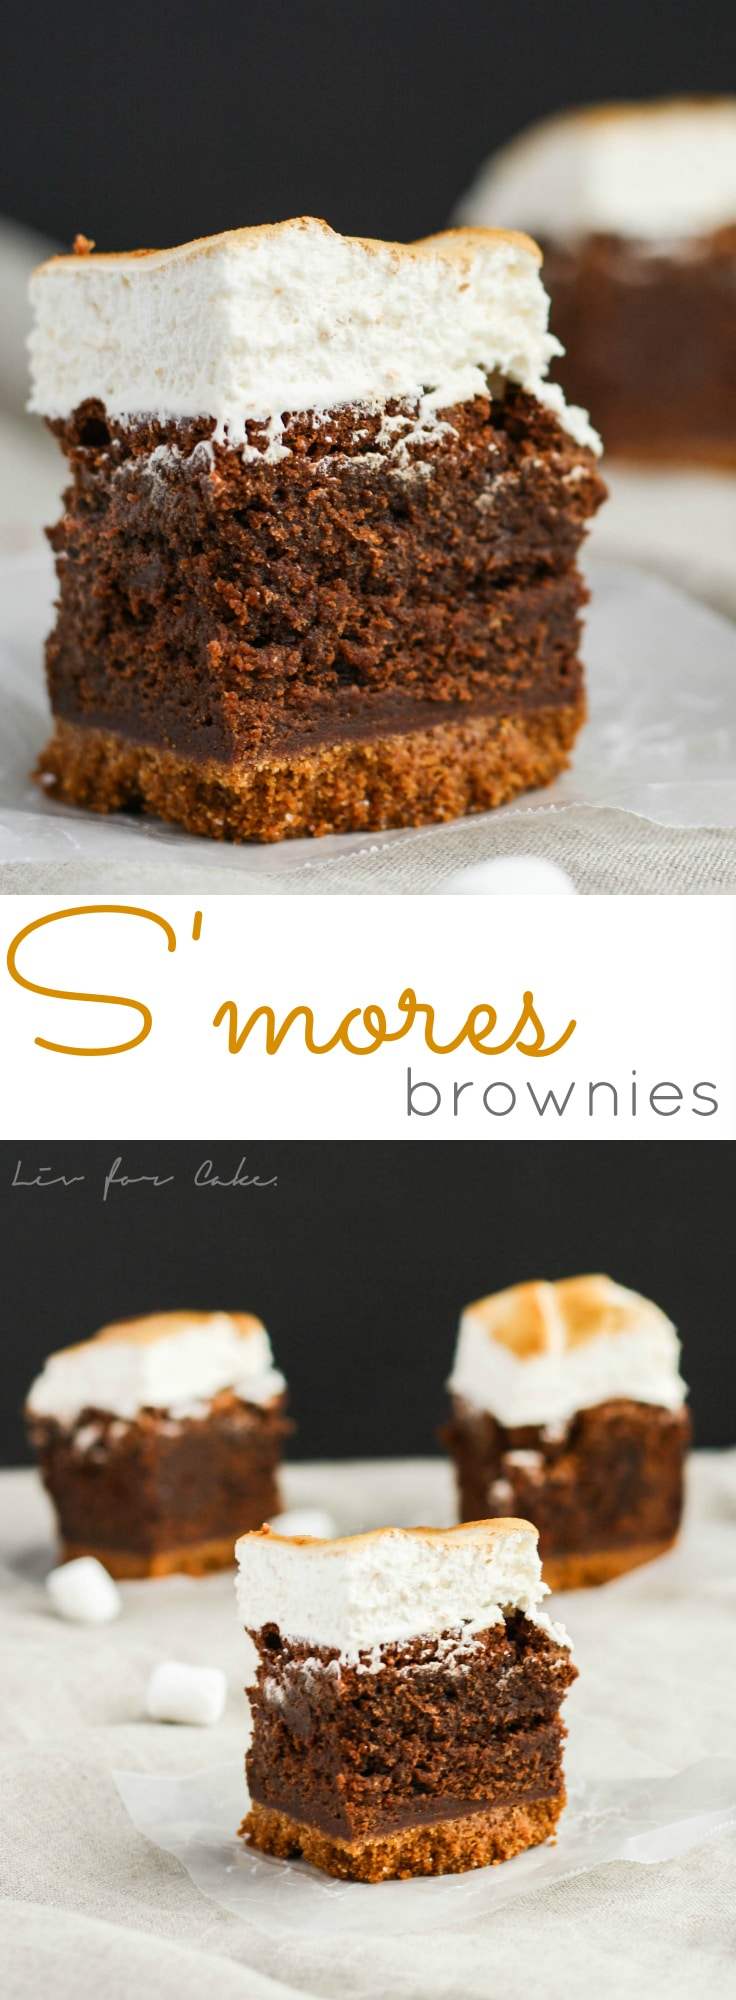 A rich chocolate brownie, graham cracker crust, and gooey toasted marshmallow... these s'mores brownies are even better than the real thing.